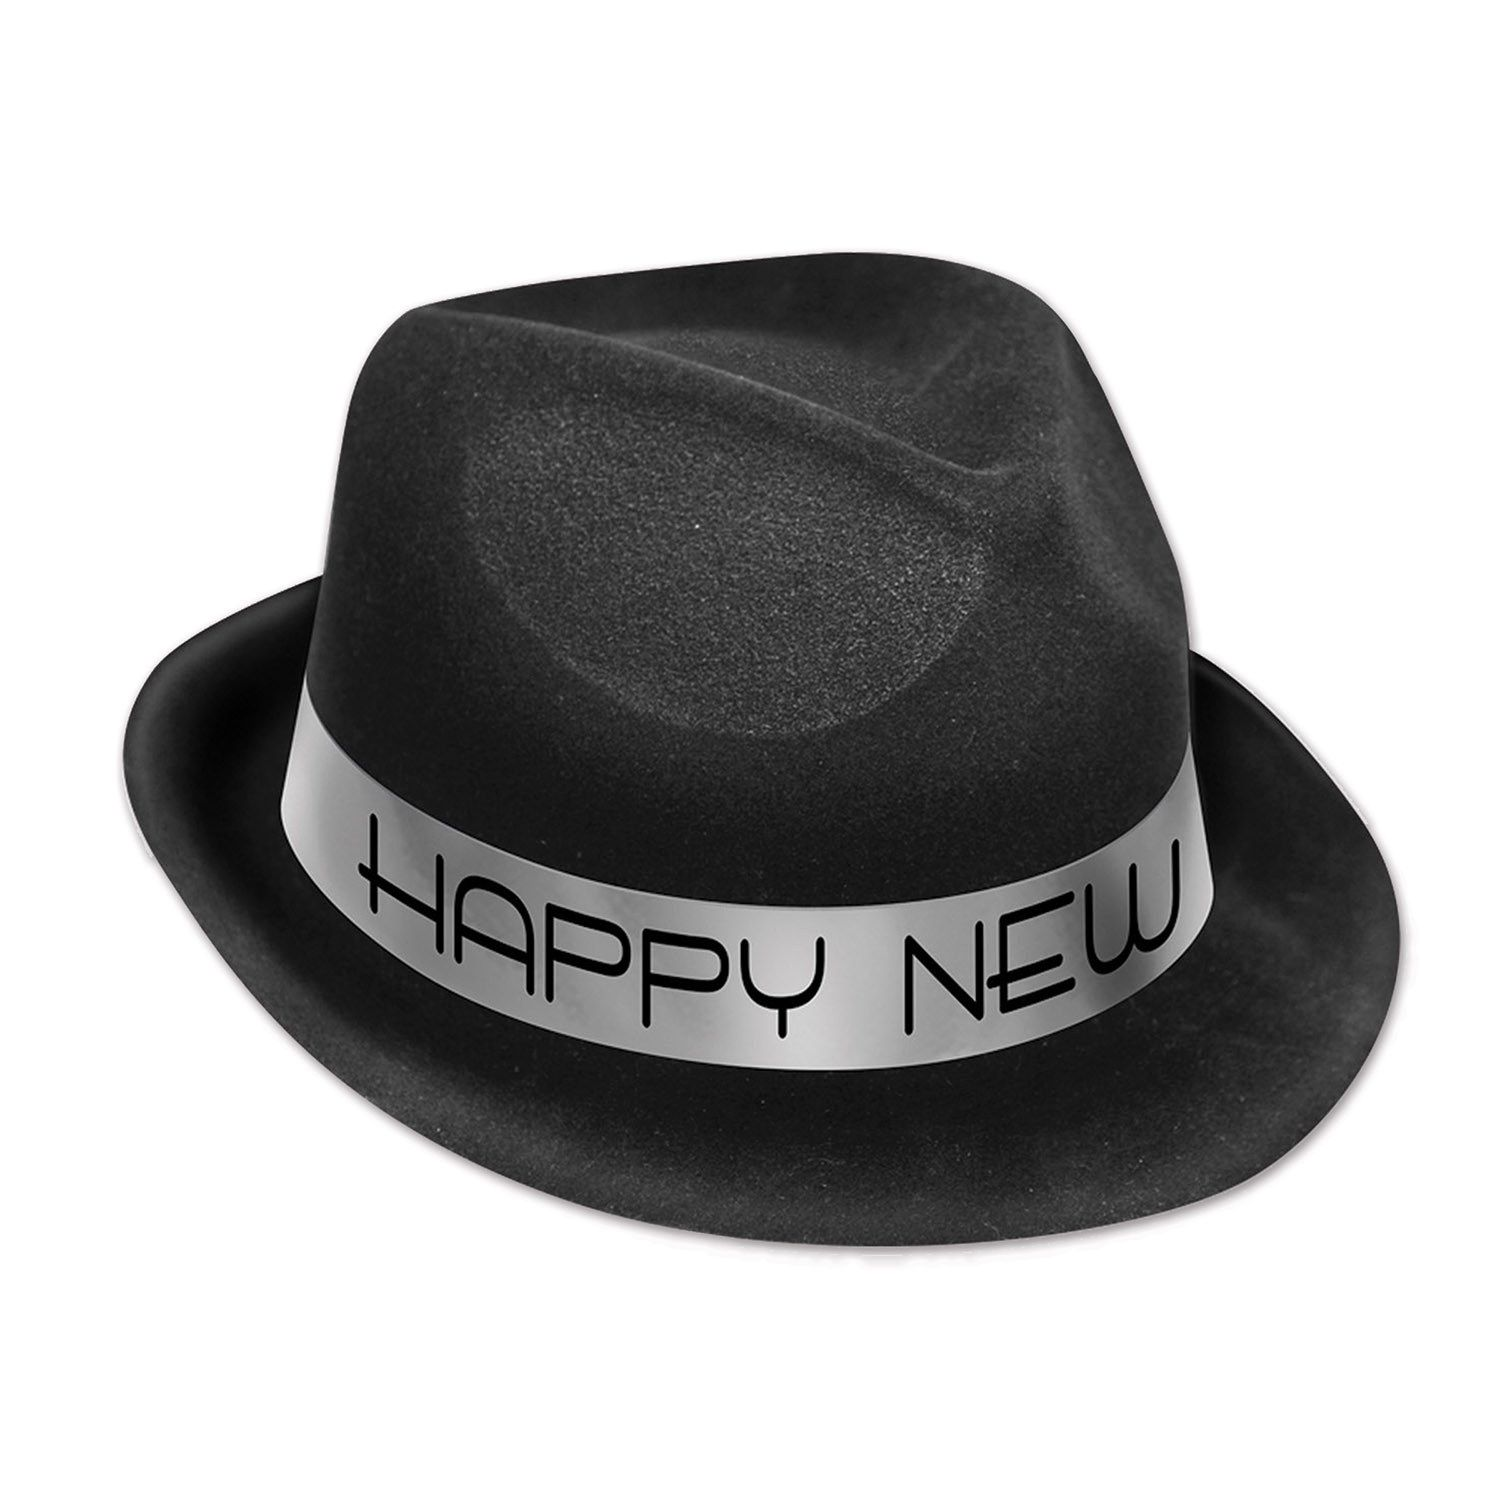 silver and black 1920s style happy new year hat